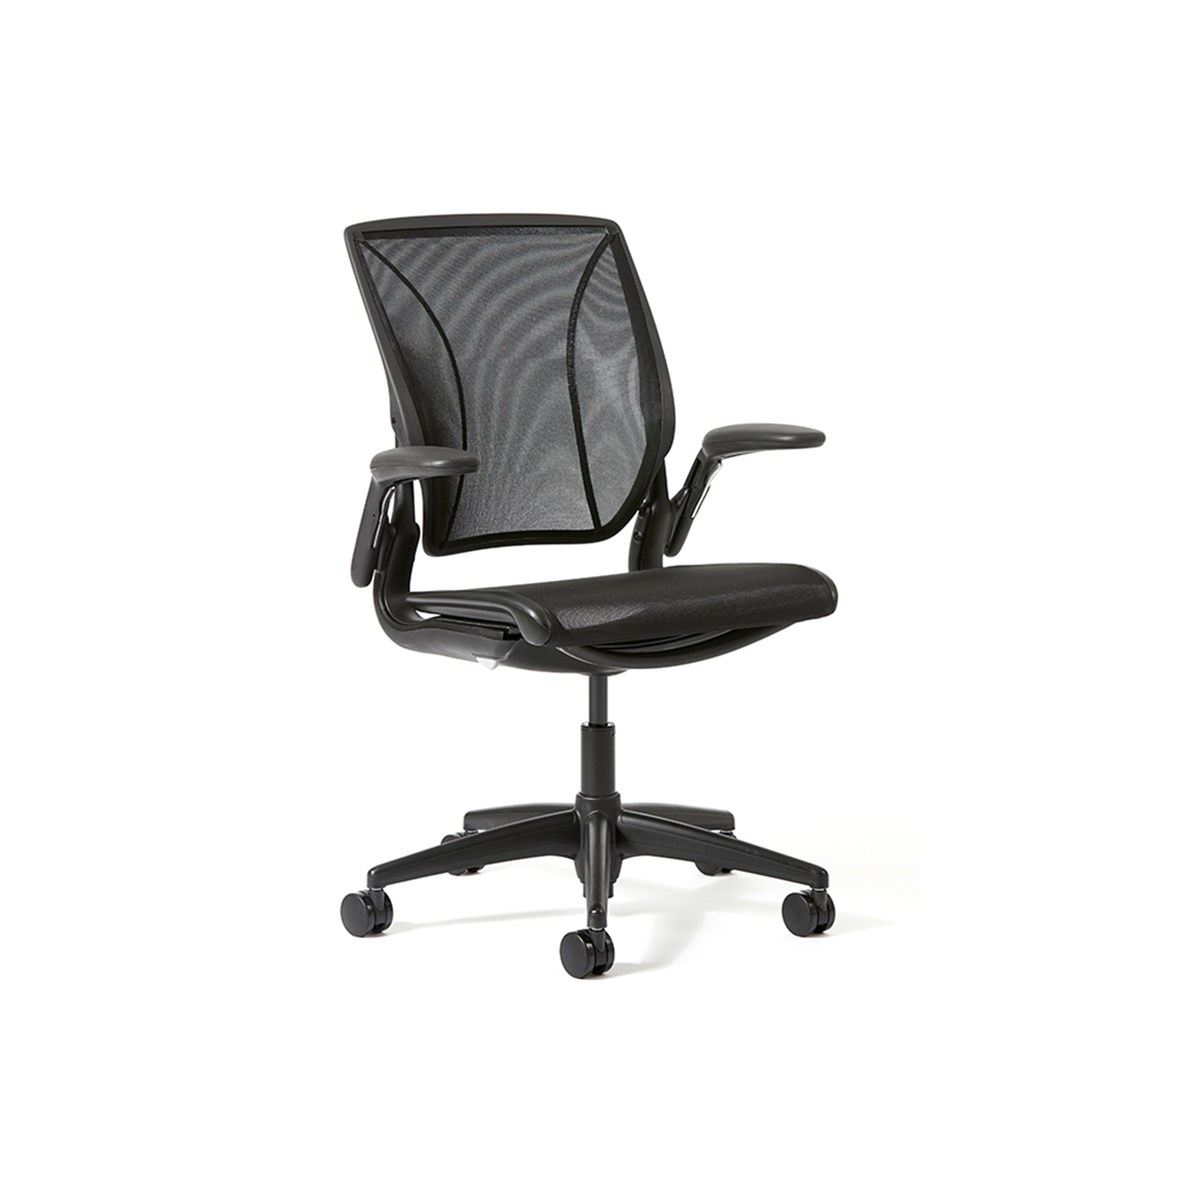 Humanscale-Niels-Diffrient-World-One-Task-Chair-Matisse-1